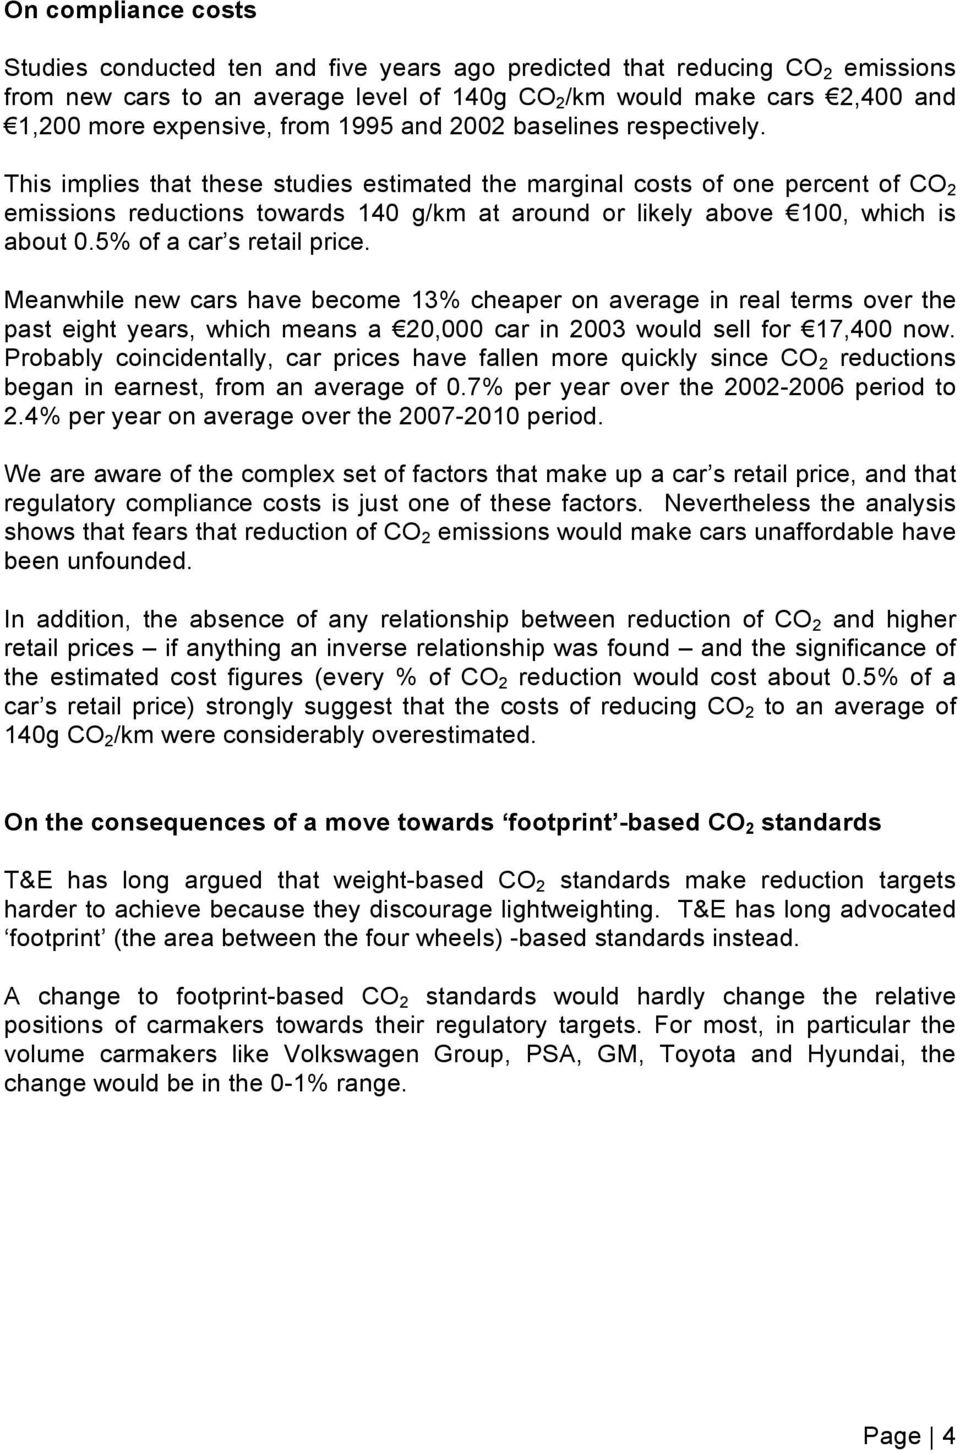 This implies that these studies estimated the marginal costs of one percent of CO 2 emissions reductions towards 140 g/km at around or likely above!100, which is about 0.5% of a car s retail price.